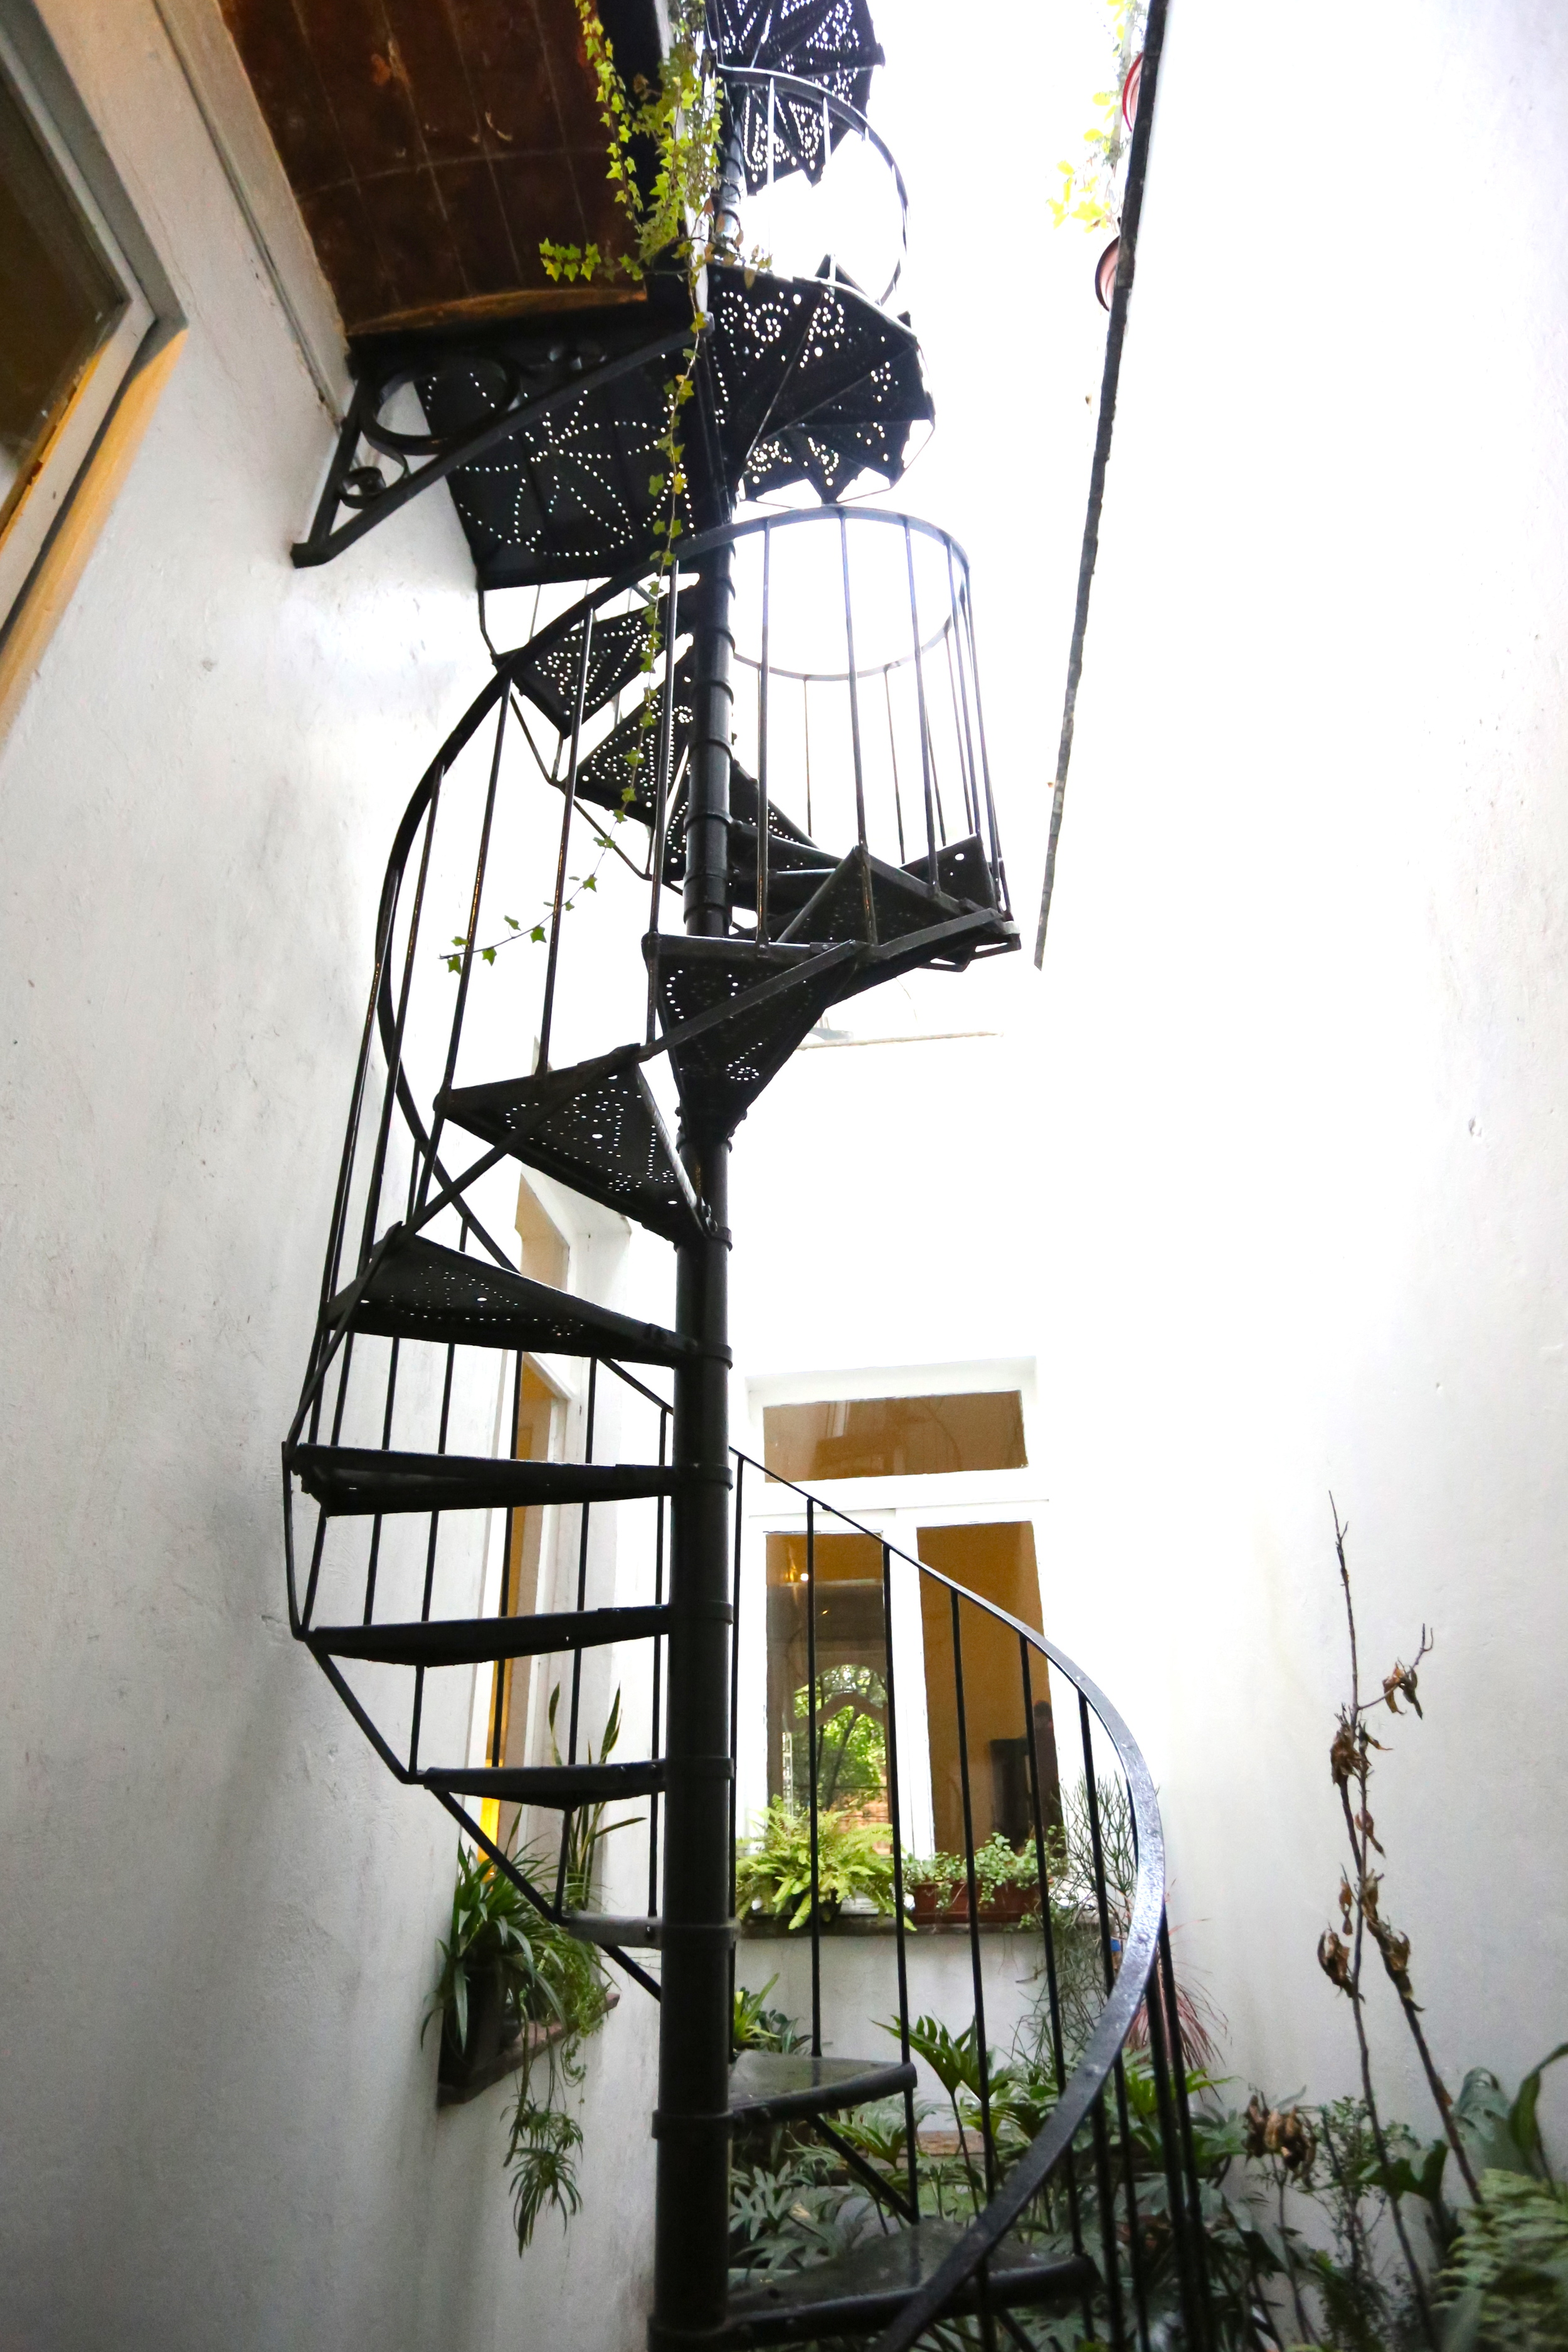 Through the kitchen and up these stairs was where the party started.